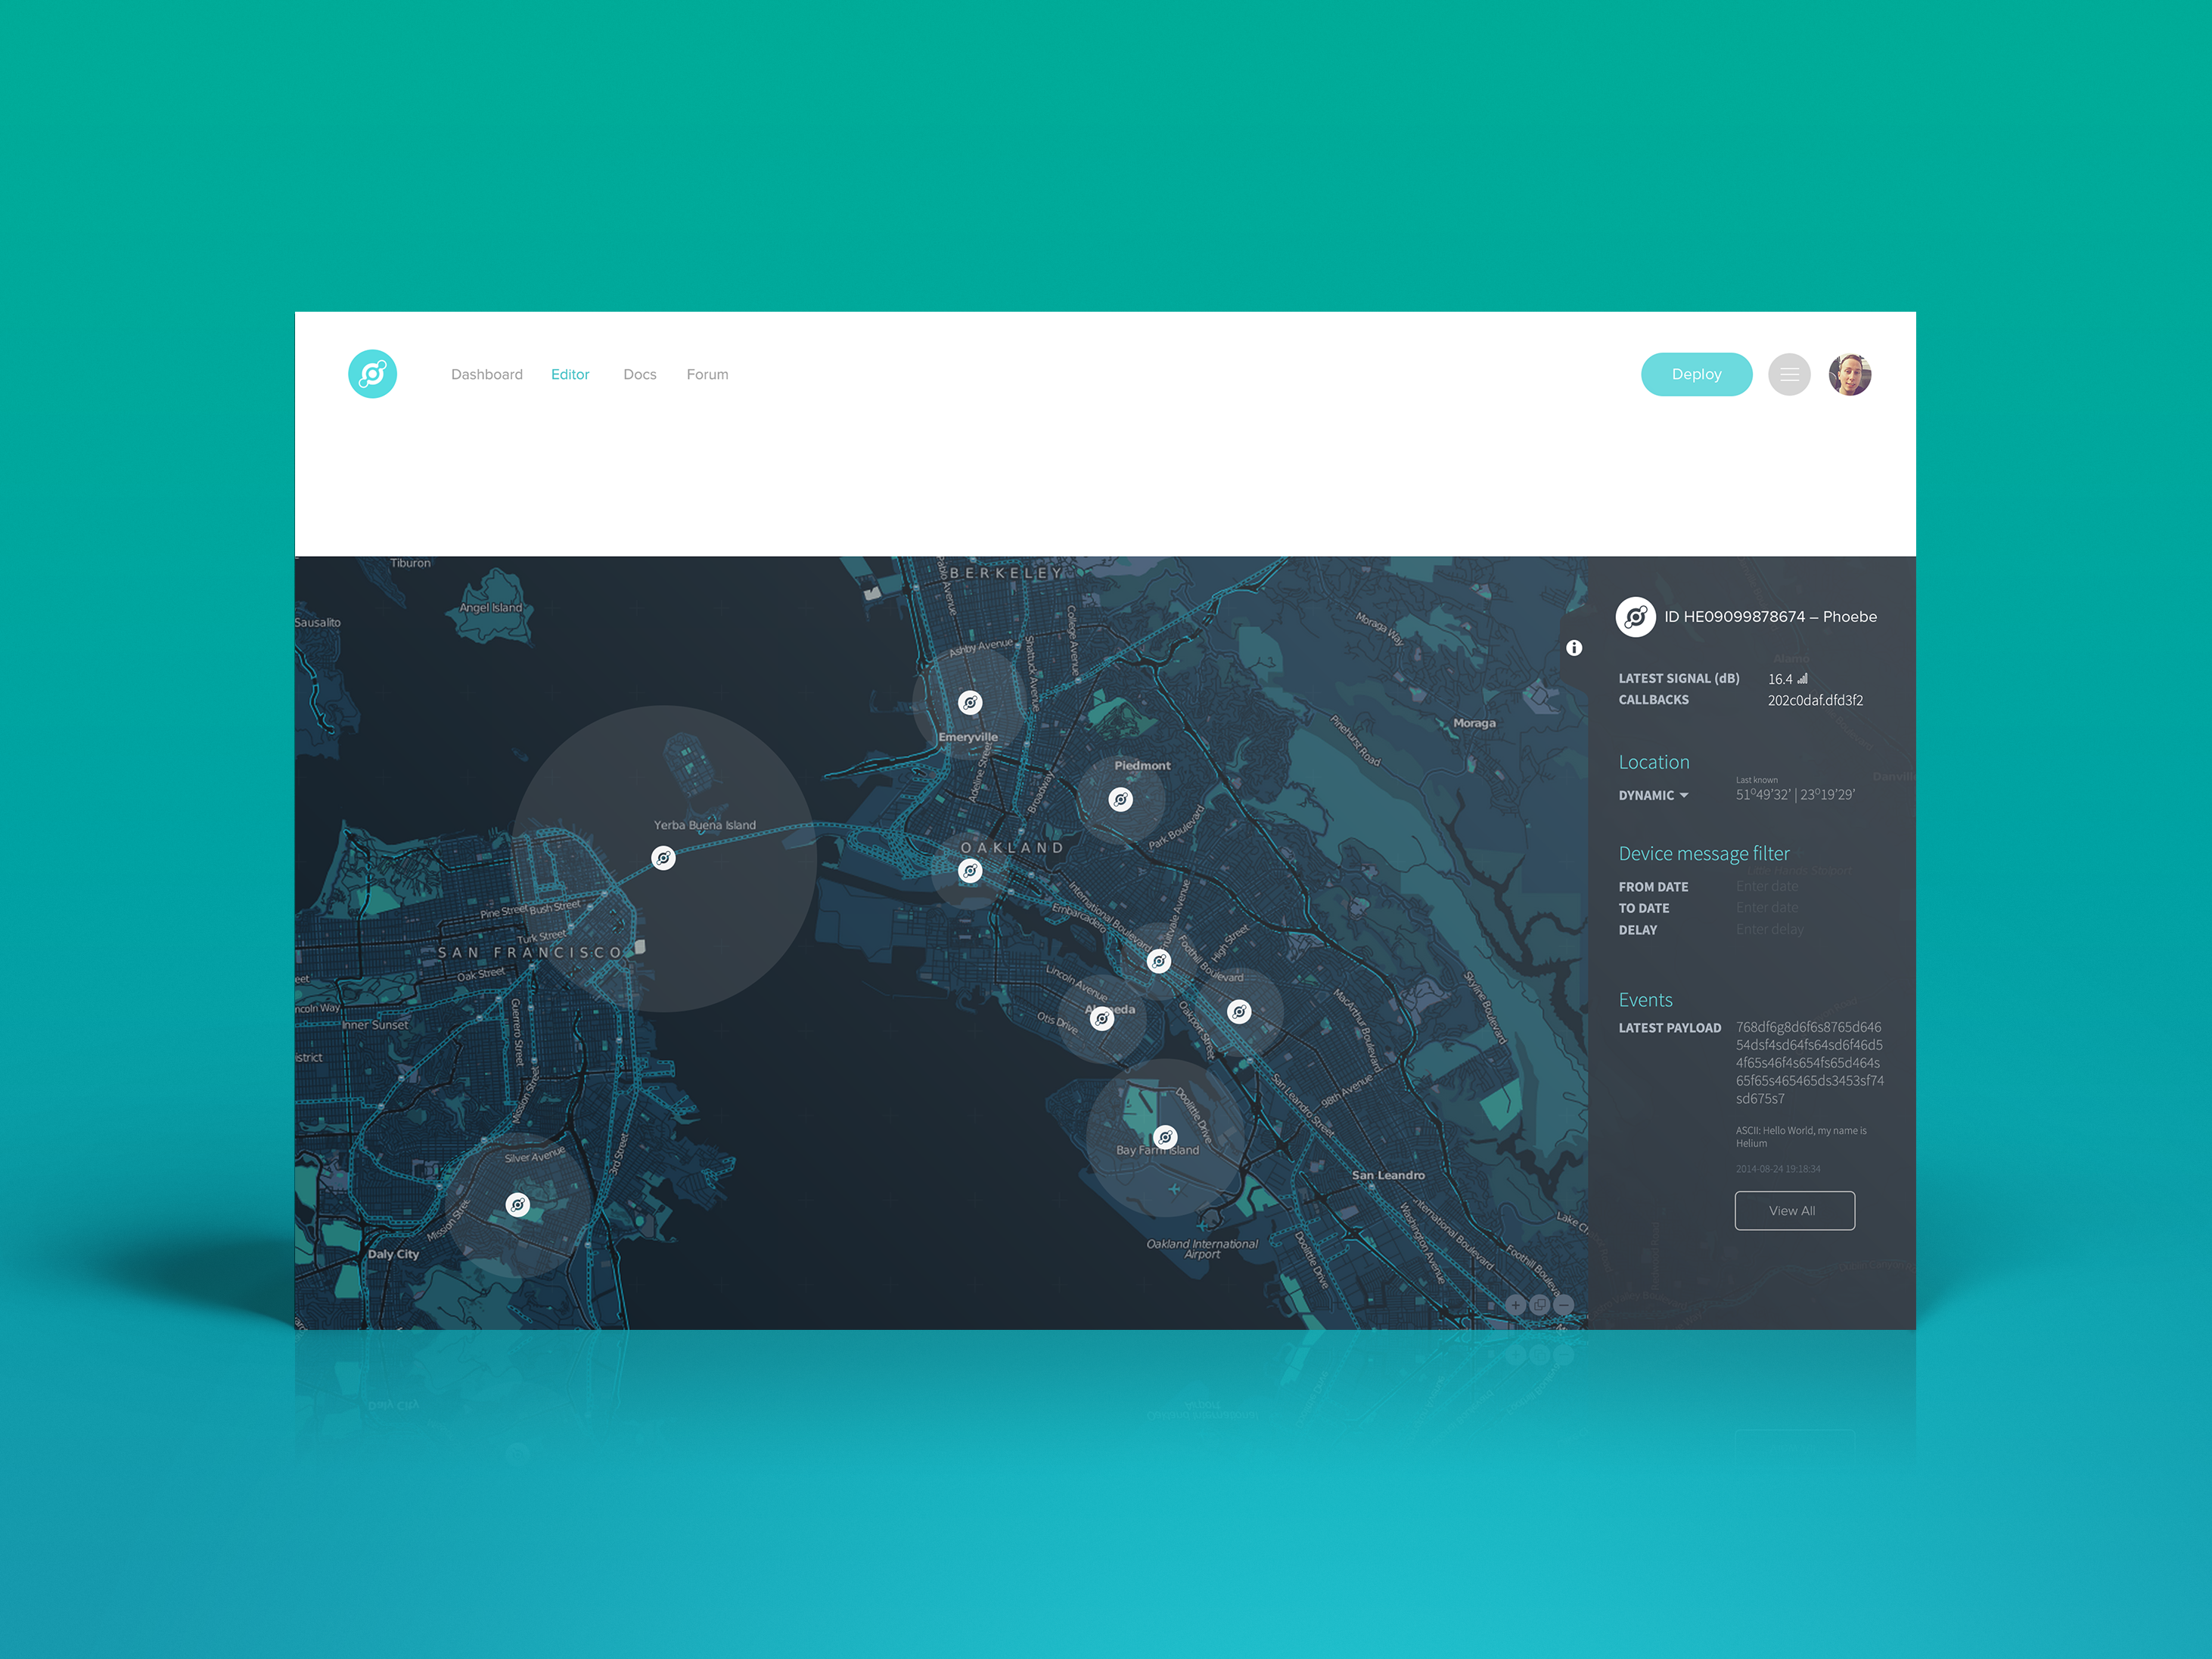 Ui Design Ideas 4 great benefits of social media for business Helium Map Dashboard User Interface Flat Ui Design Ns This Is Wonderfully Tight Colour Control But Also Cleantexture Contrast And That Negative Space